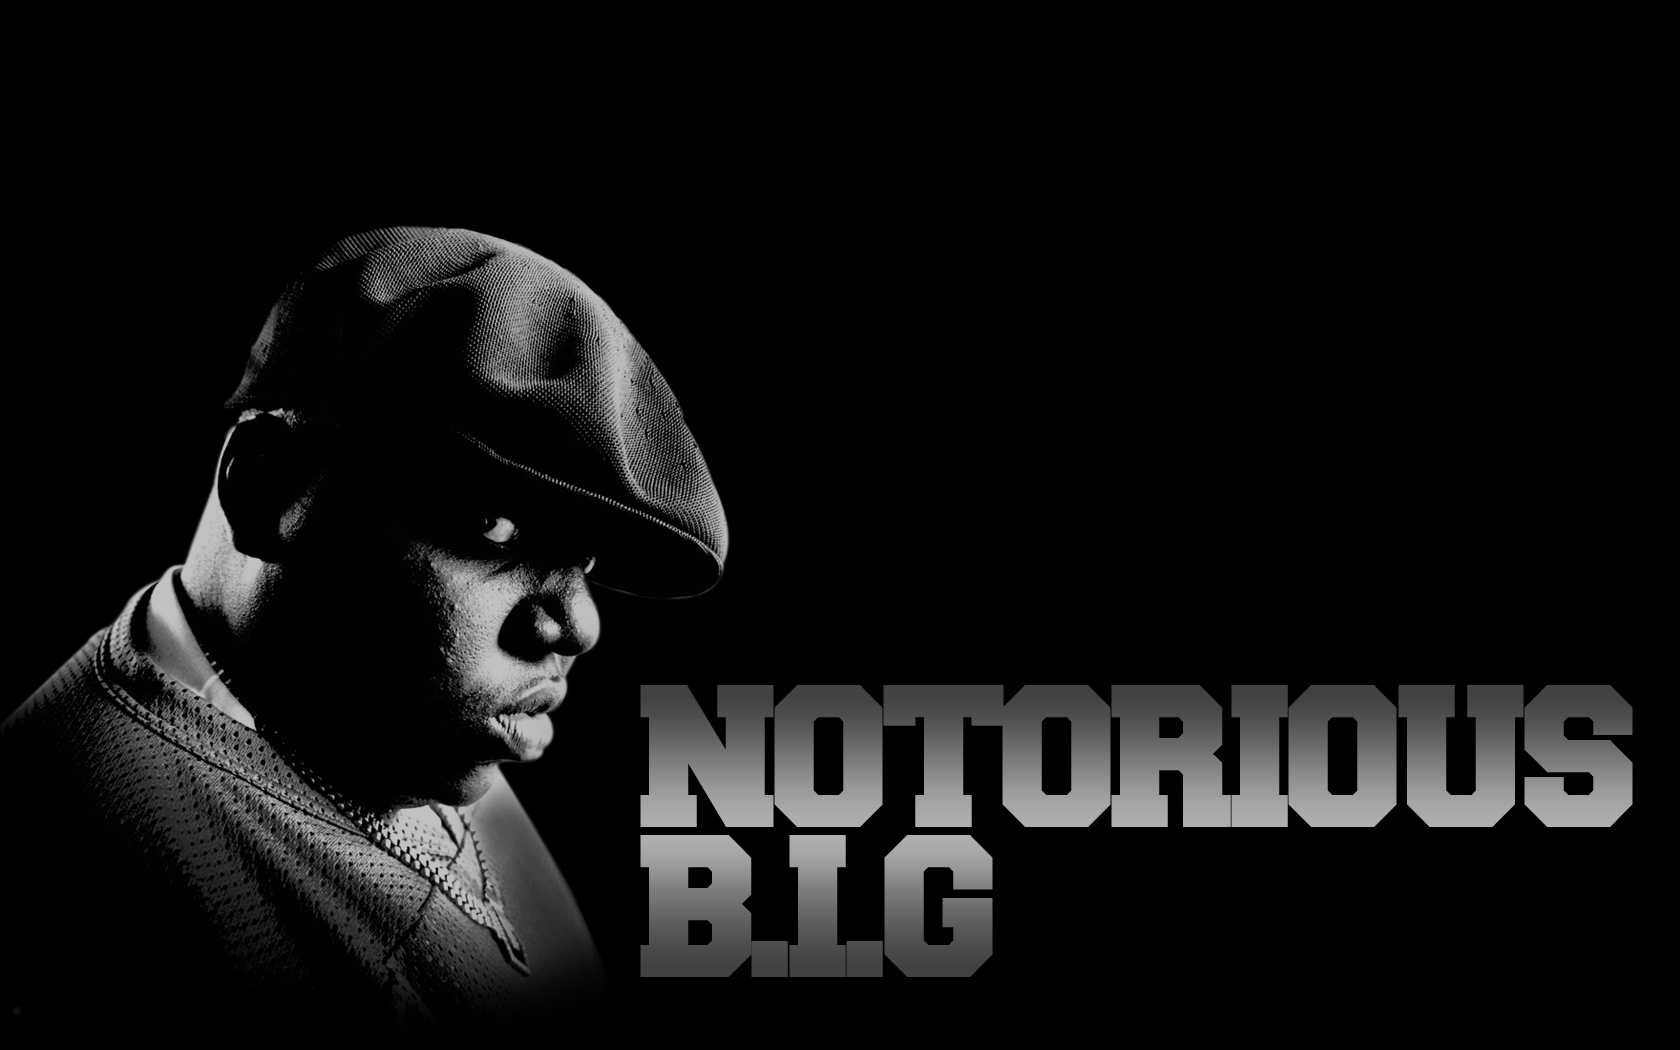 The Notorious B I G Black And White Wallpaper The